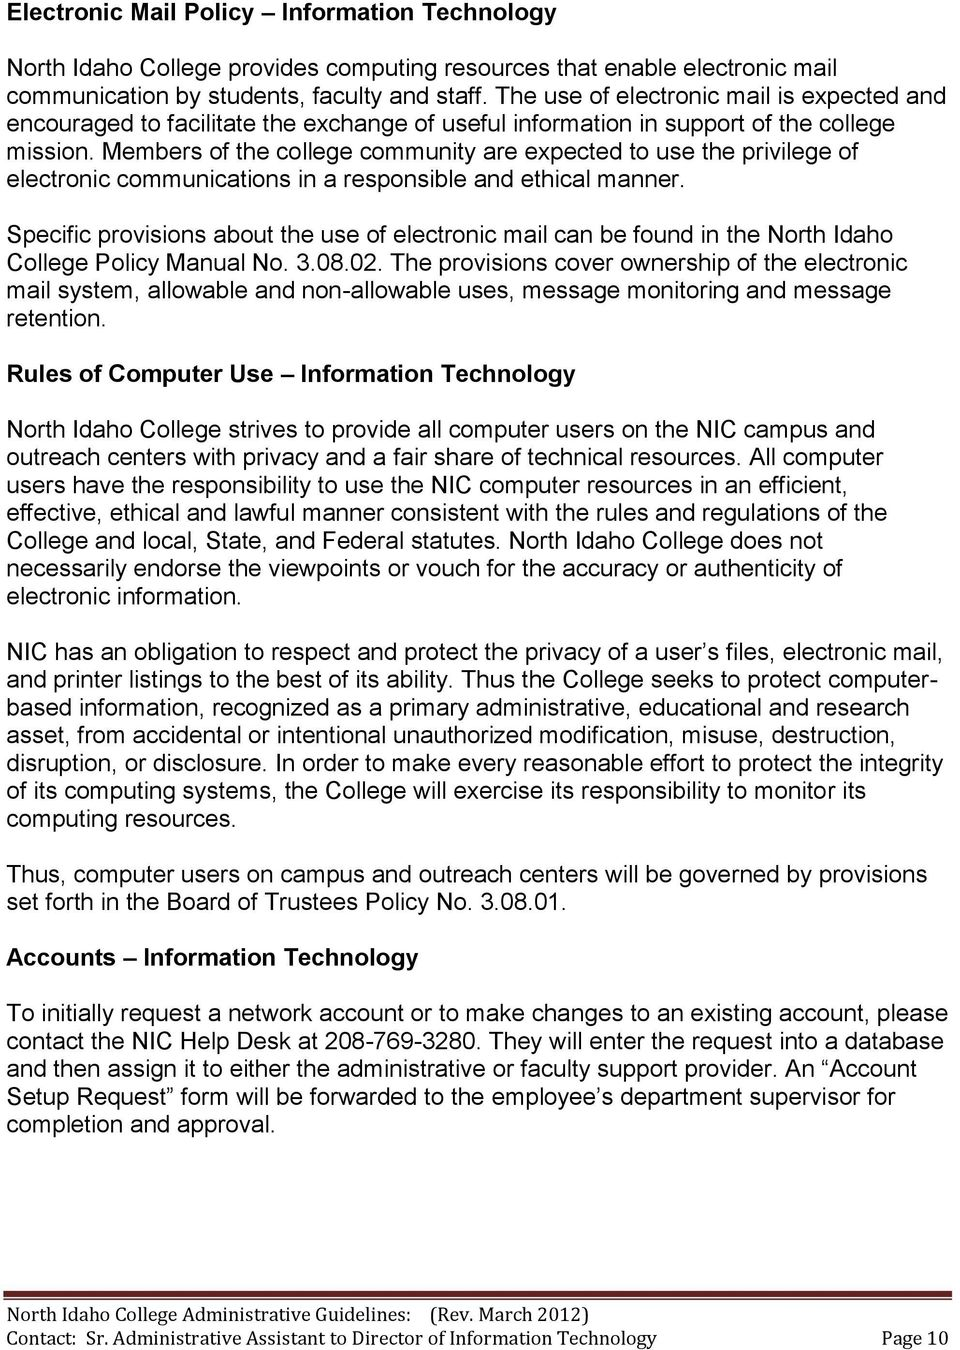 Members of the college community are expected to use the privilege of electronic communications in a responsible and ethical manner.